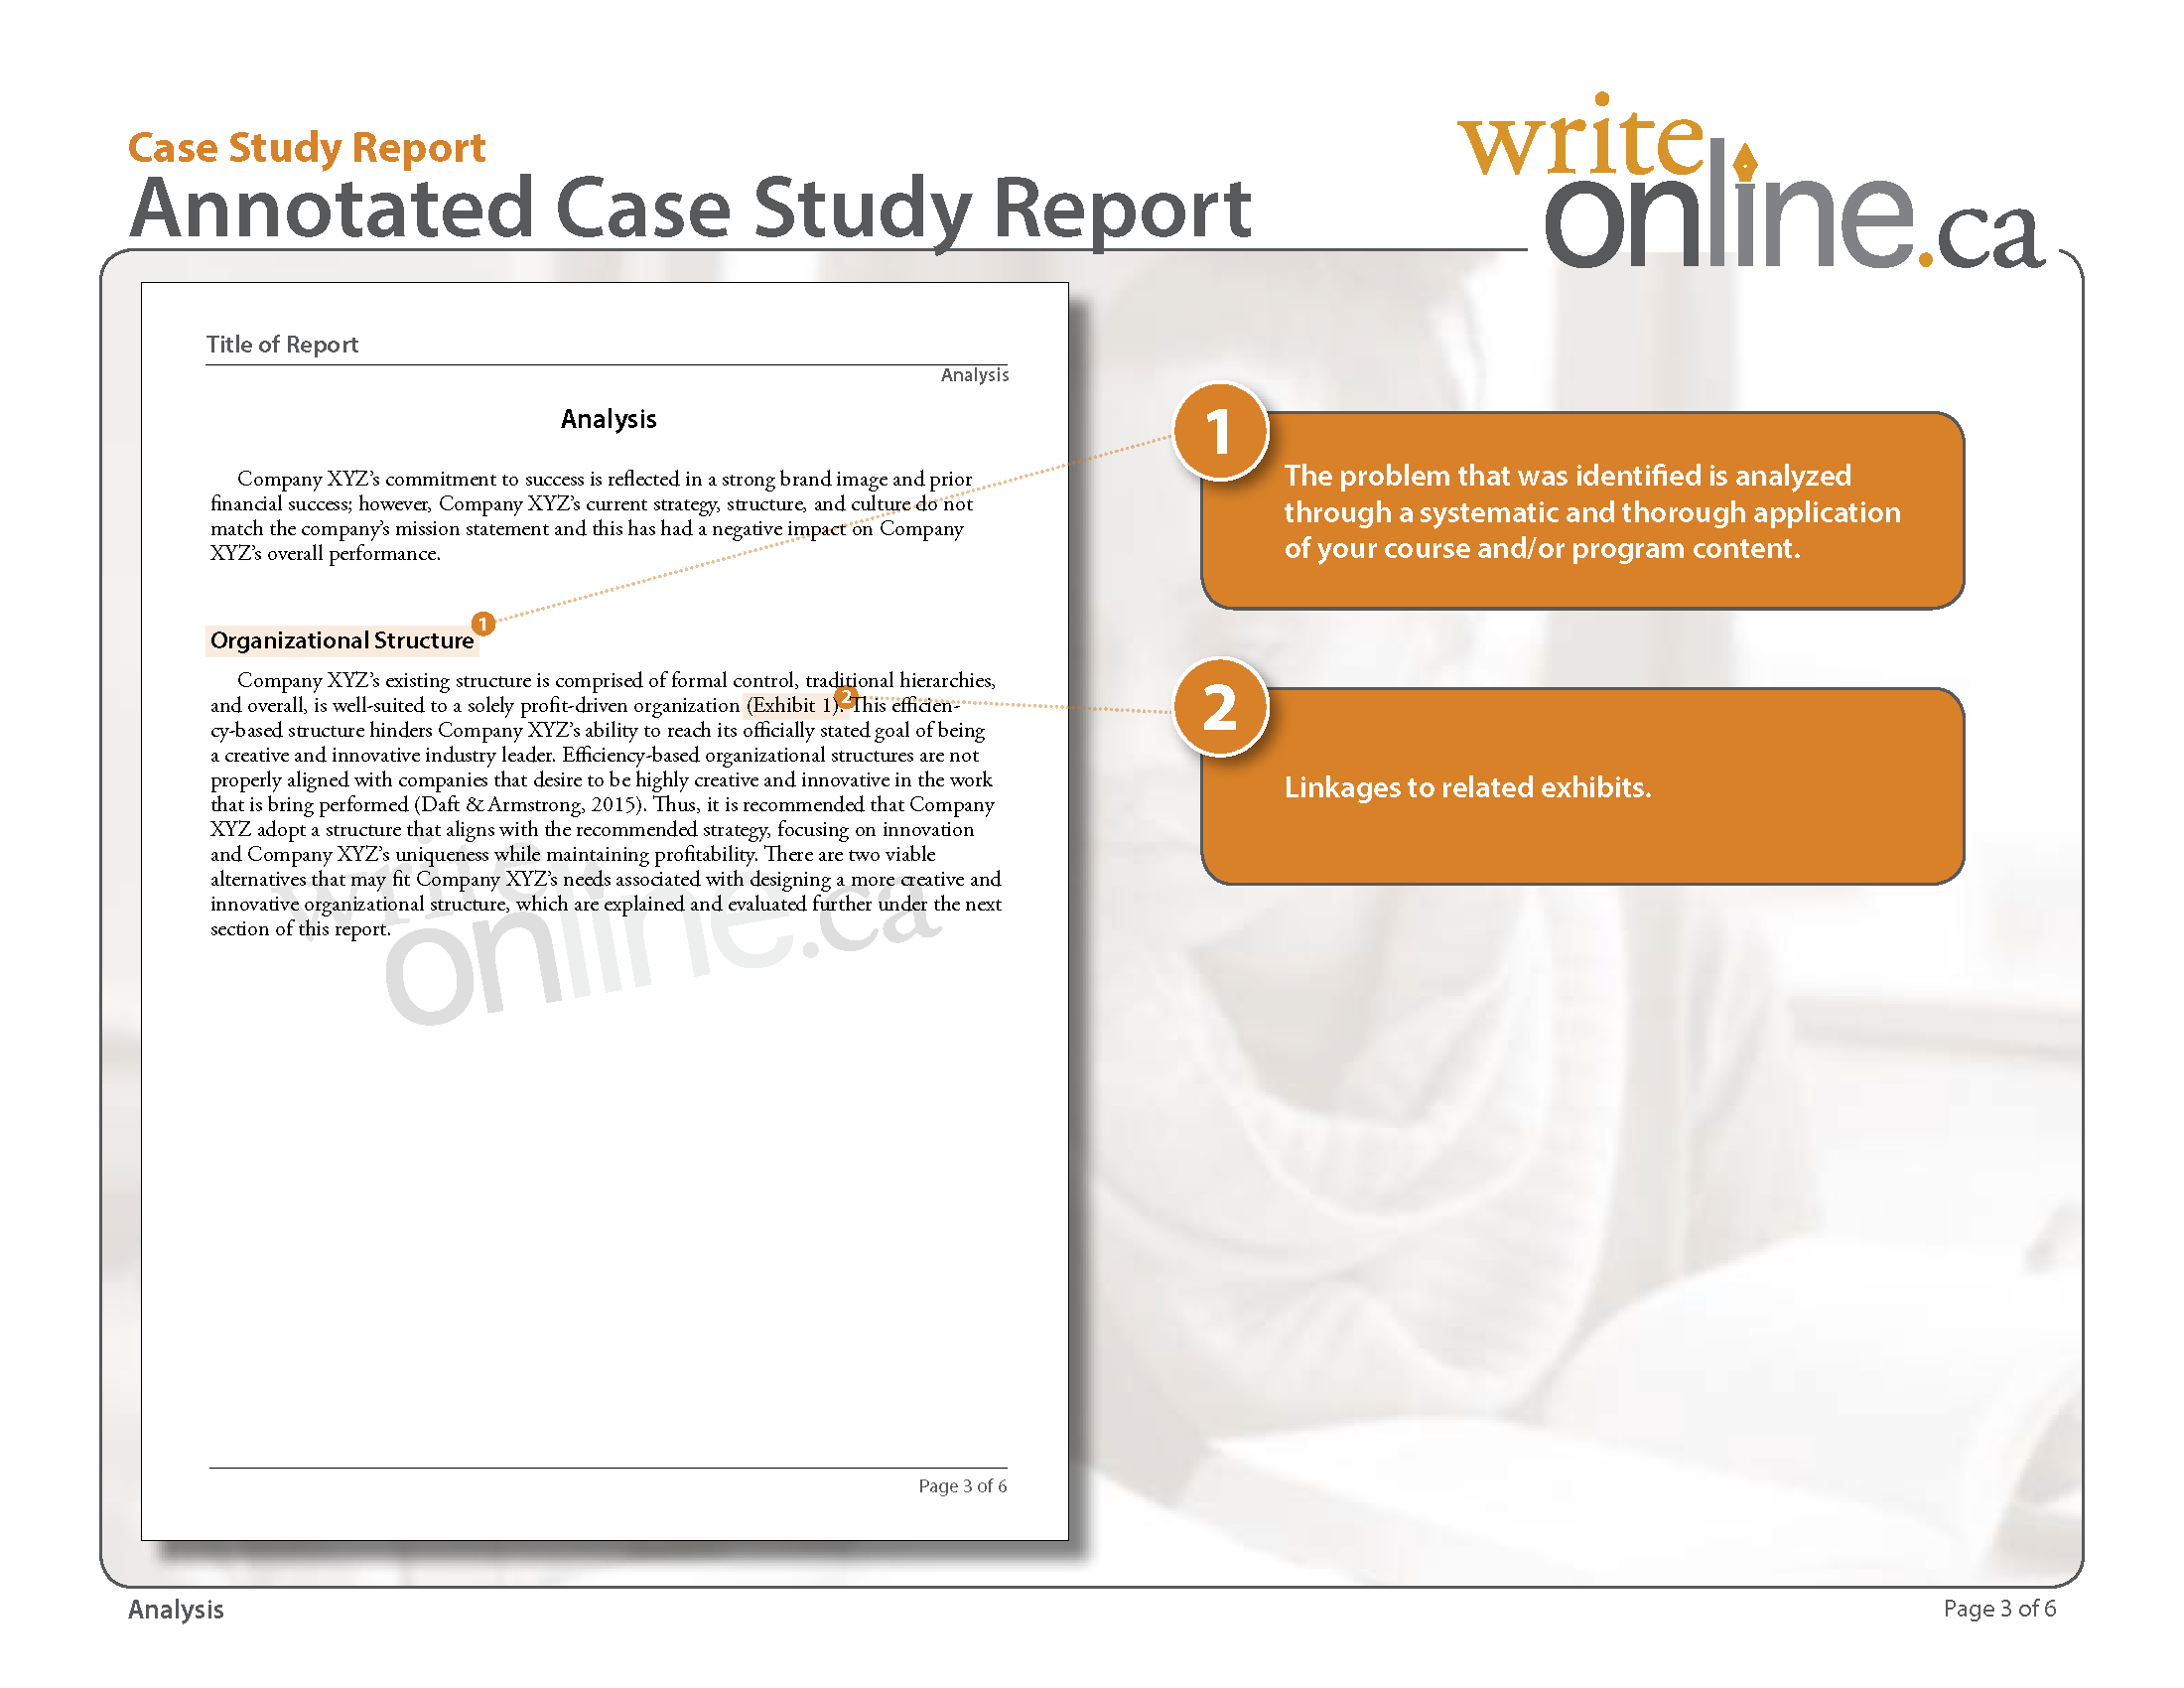 009 Write Online Case Study Report Writing Guide Parts Of Persuasive